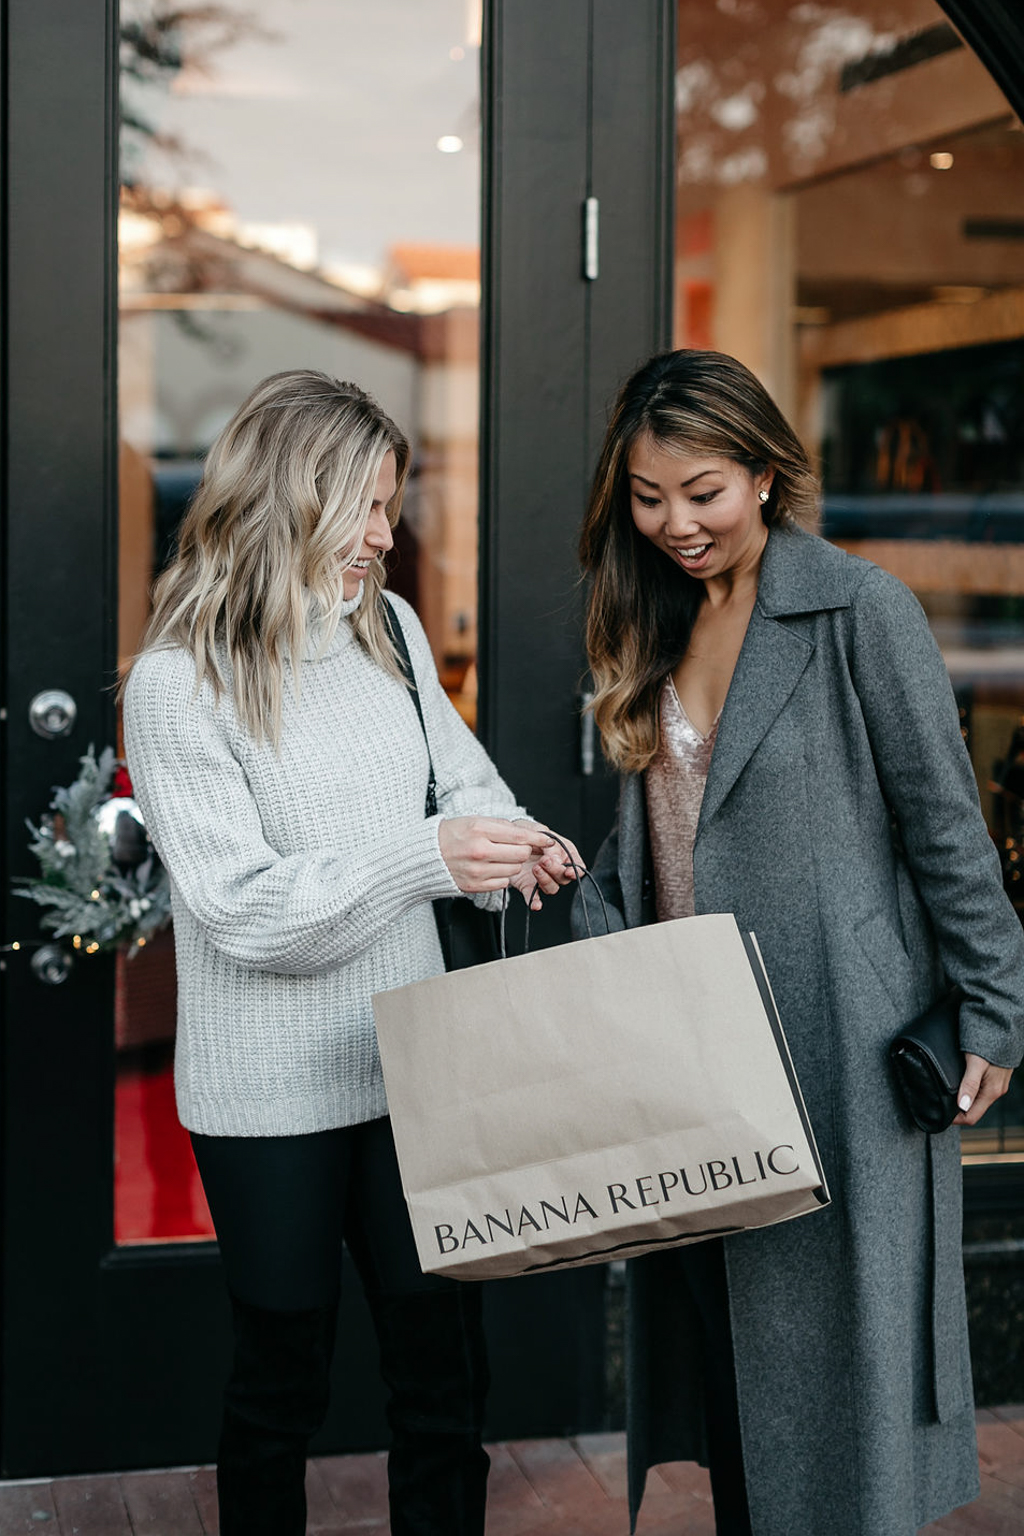 Banana Republic holiday - One Small Blonde